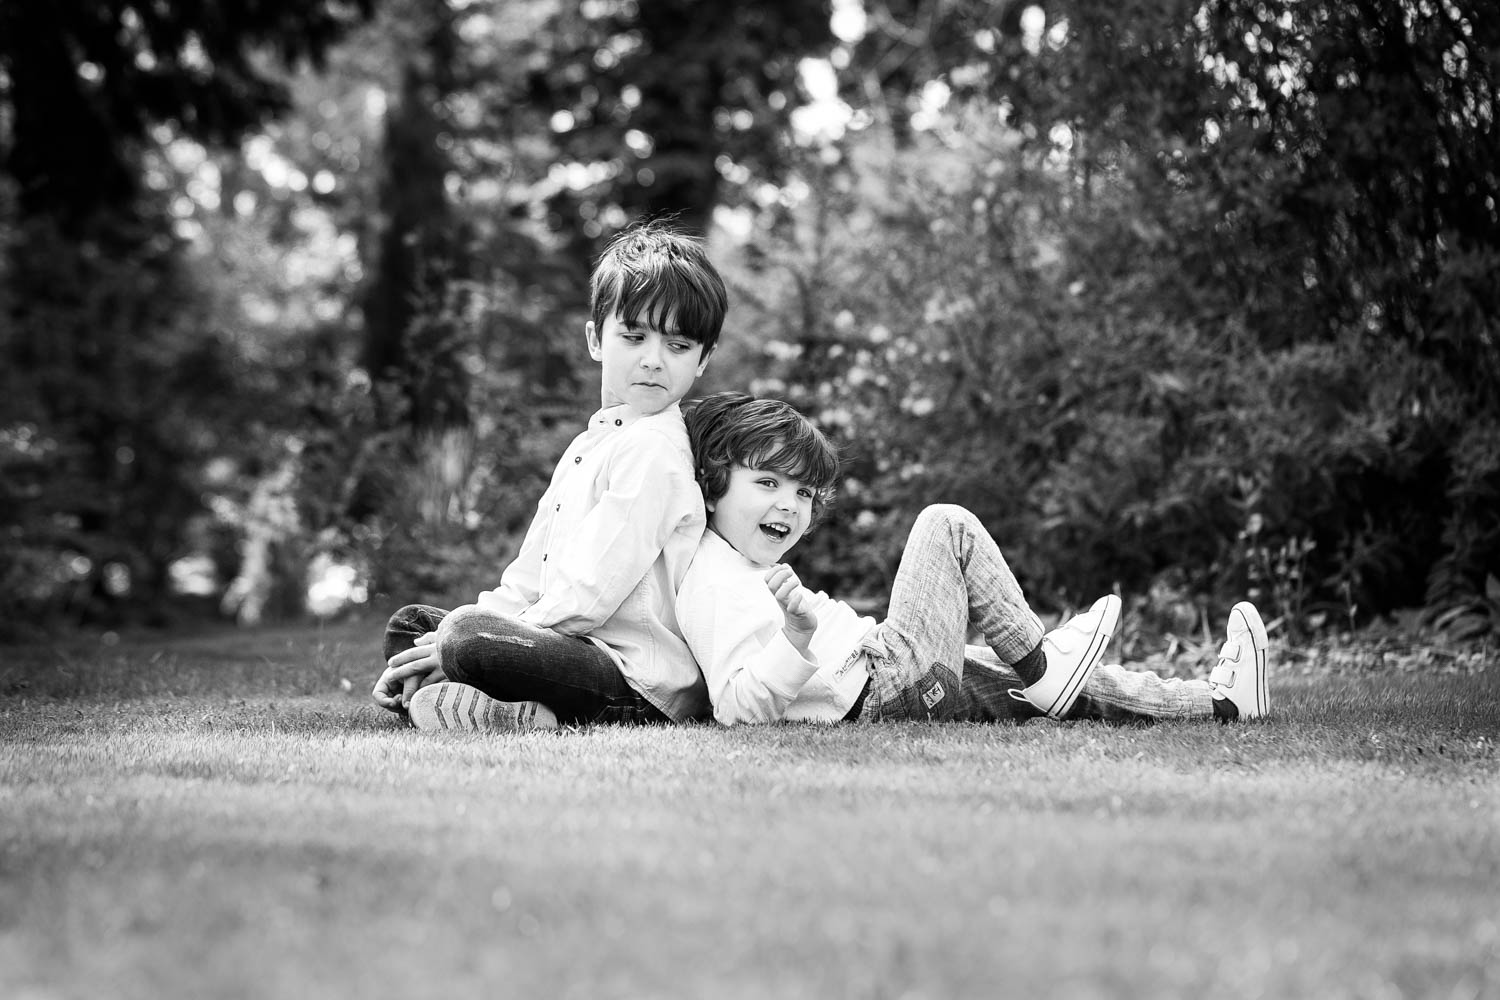 20170330-Black and White - Spring - Siblings.jpg